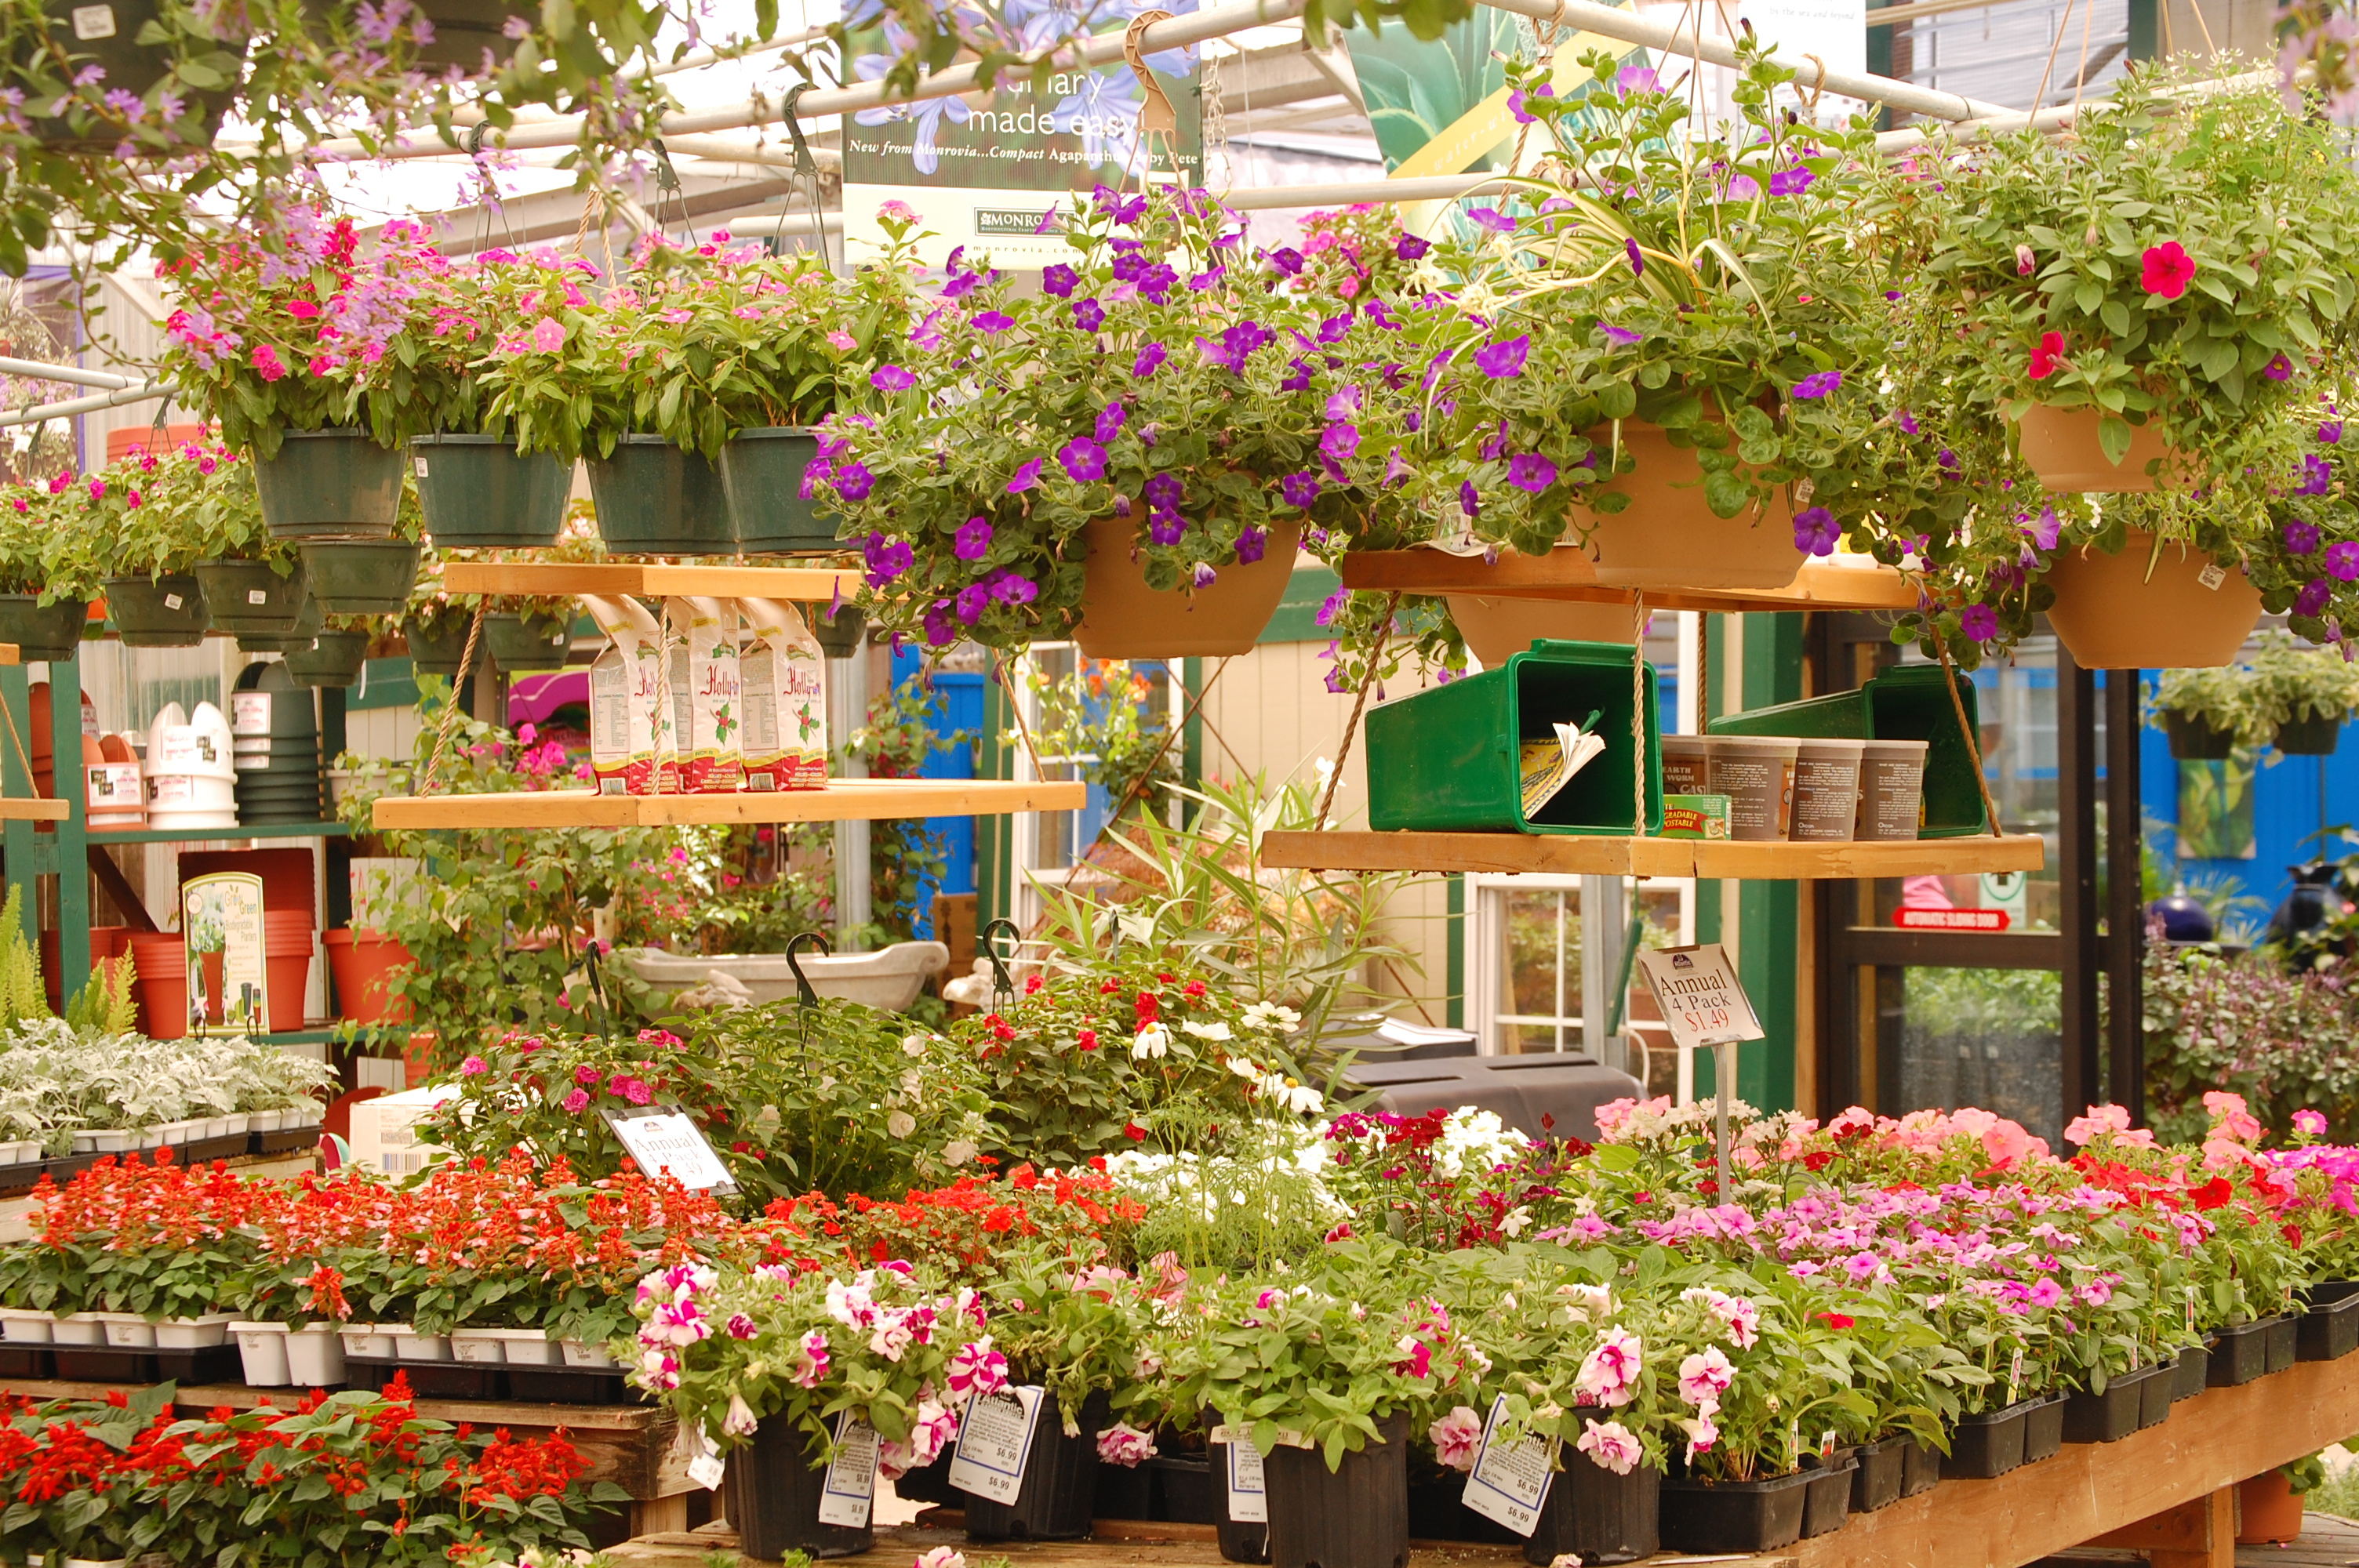 High Quality Atlantic Garden Center Is As Beautiful As Any Garden And A Walk Through The  Many Varieties Of Perennials, Shrubs And Annuals Is Truly Just Like A Walk  In ...